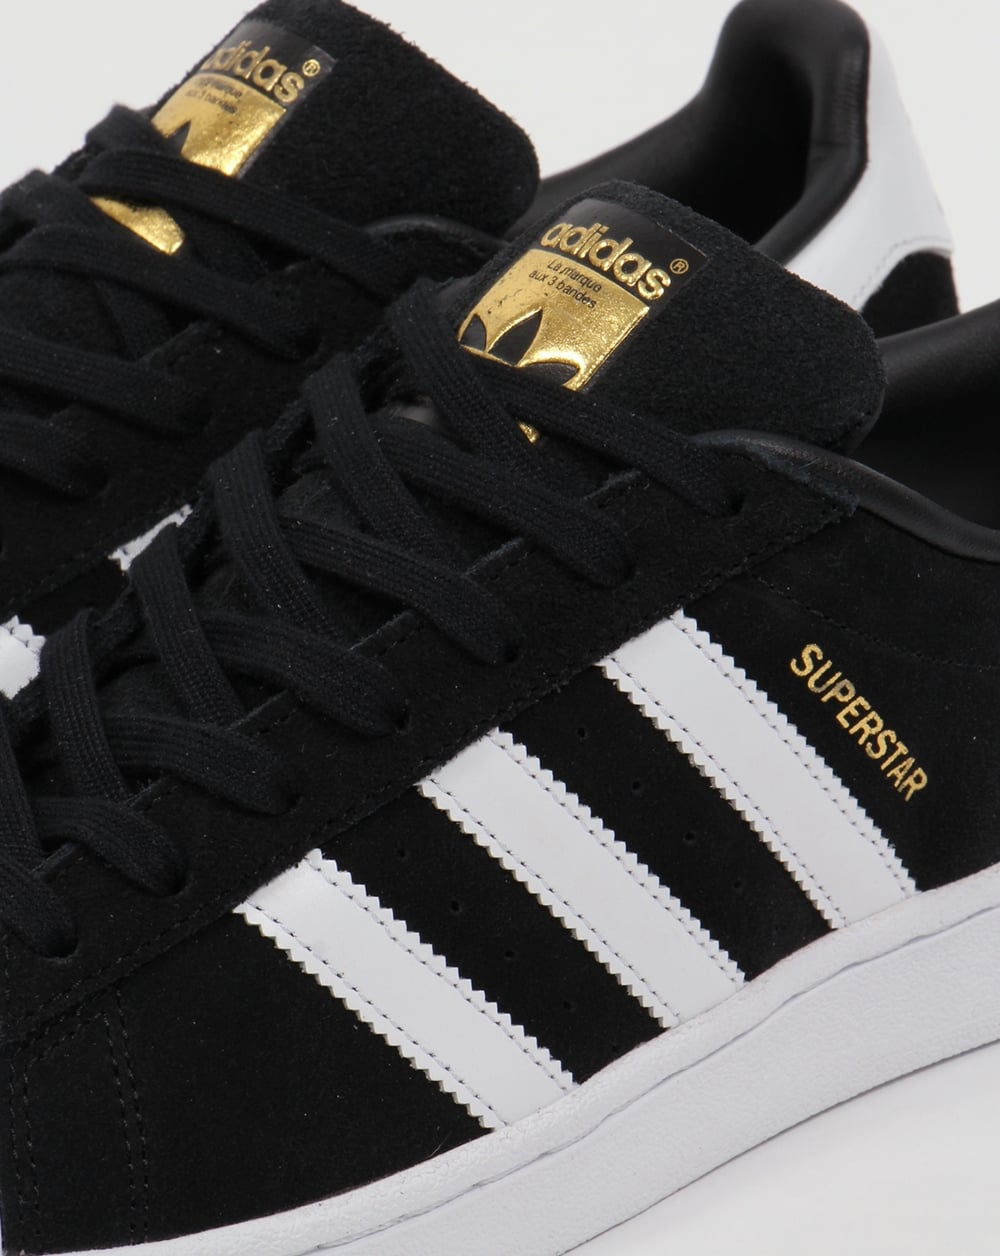 e7a496a16ae Adidas Superstar Suede Trainers Black White